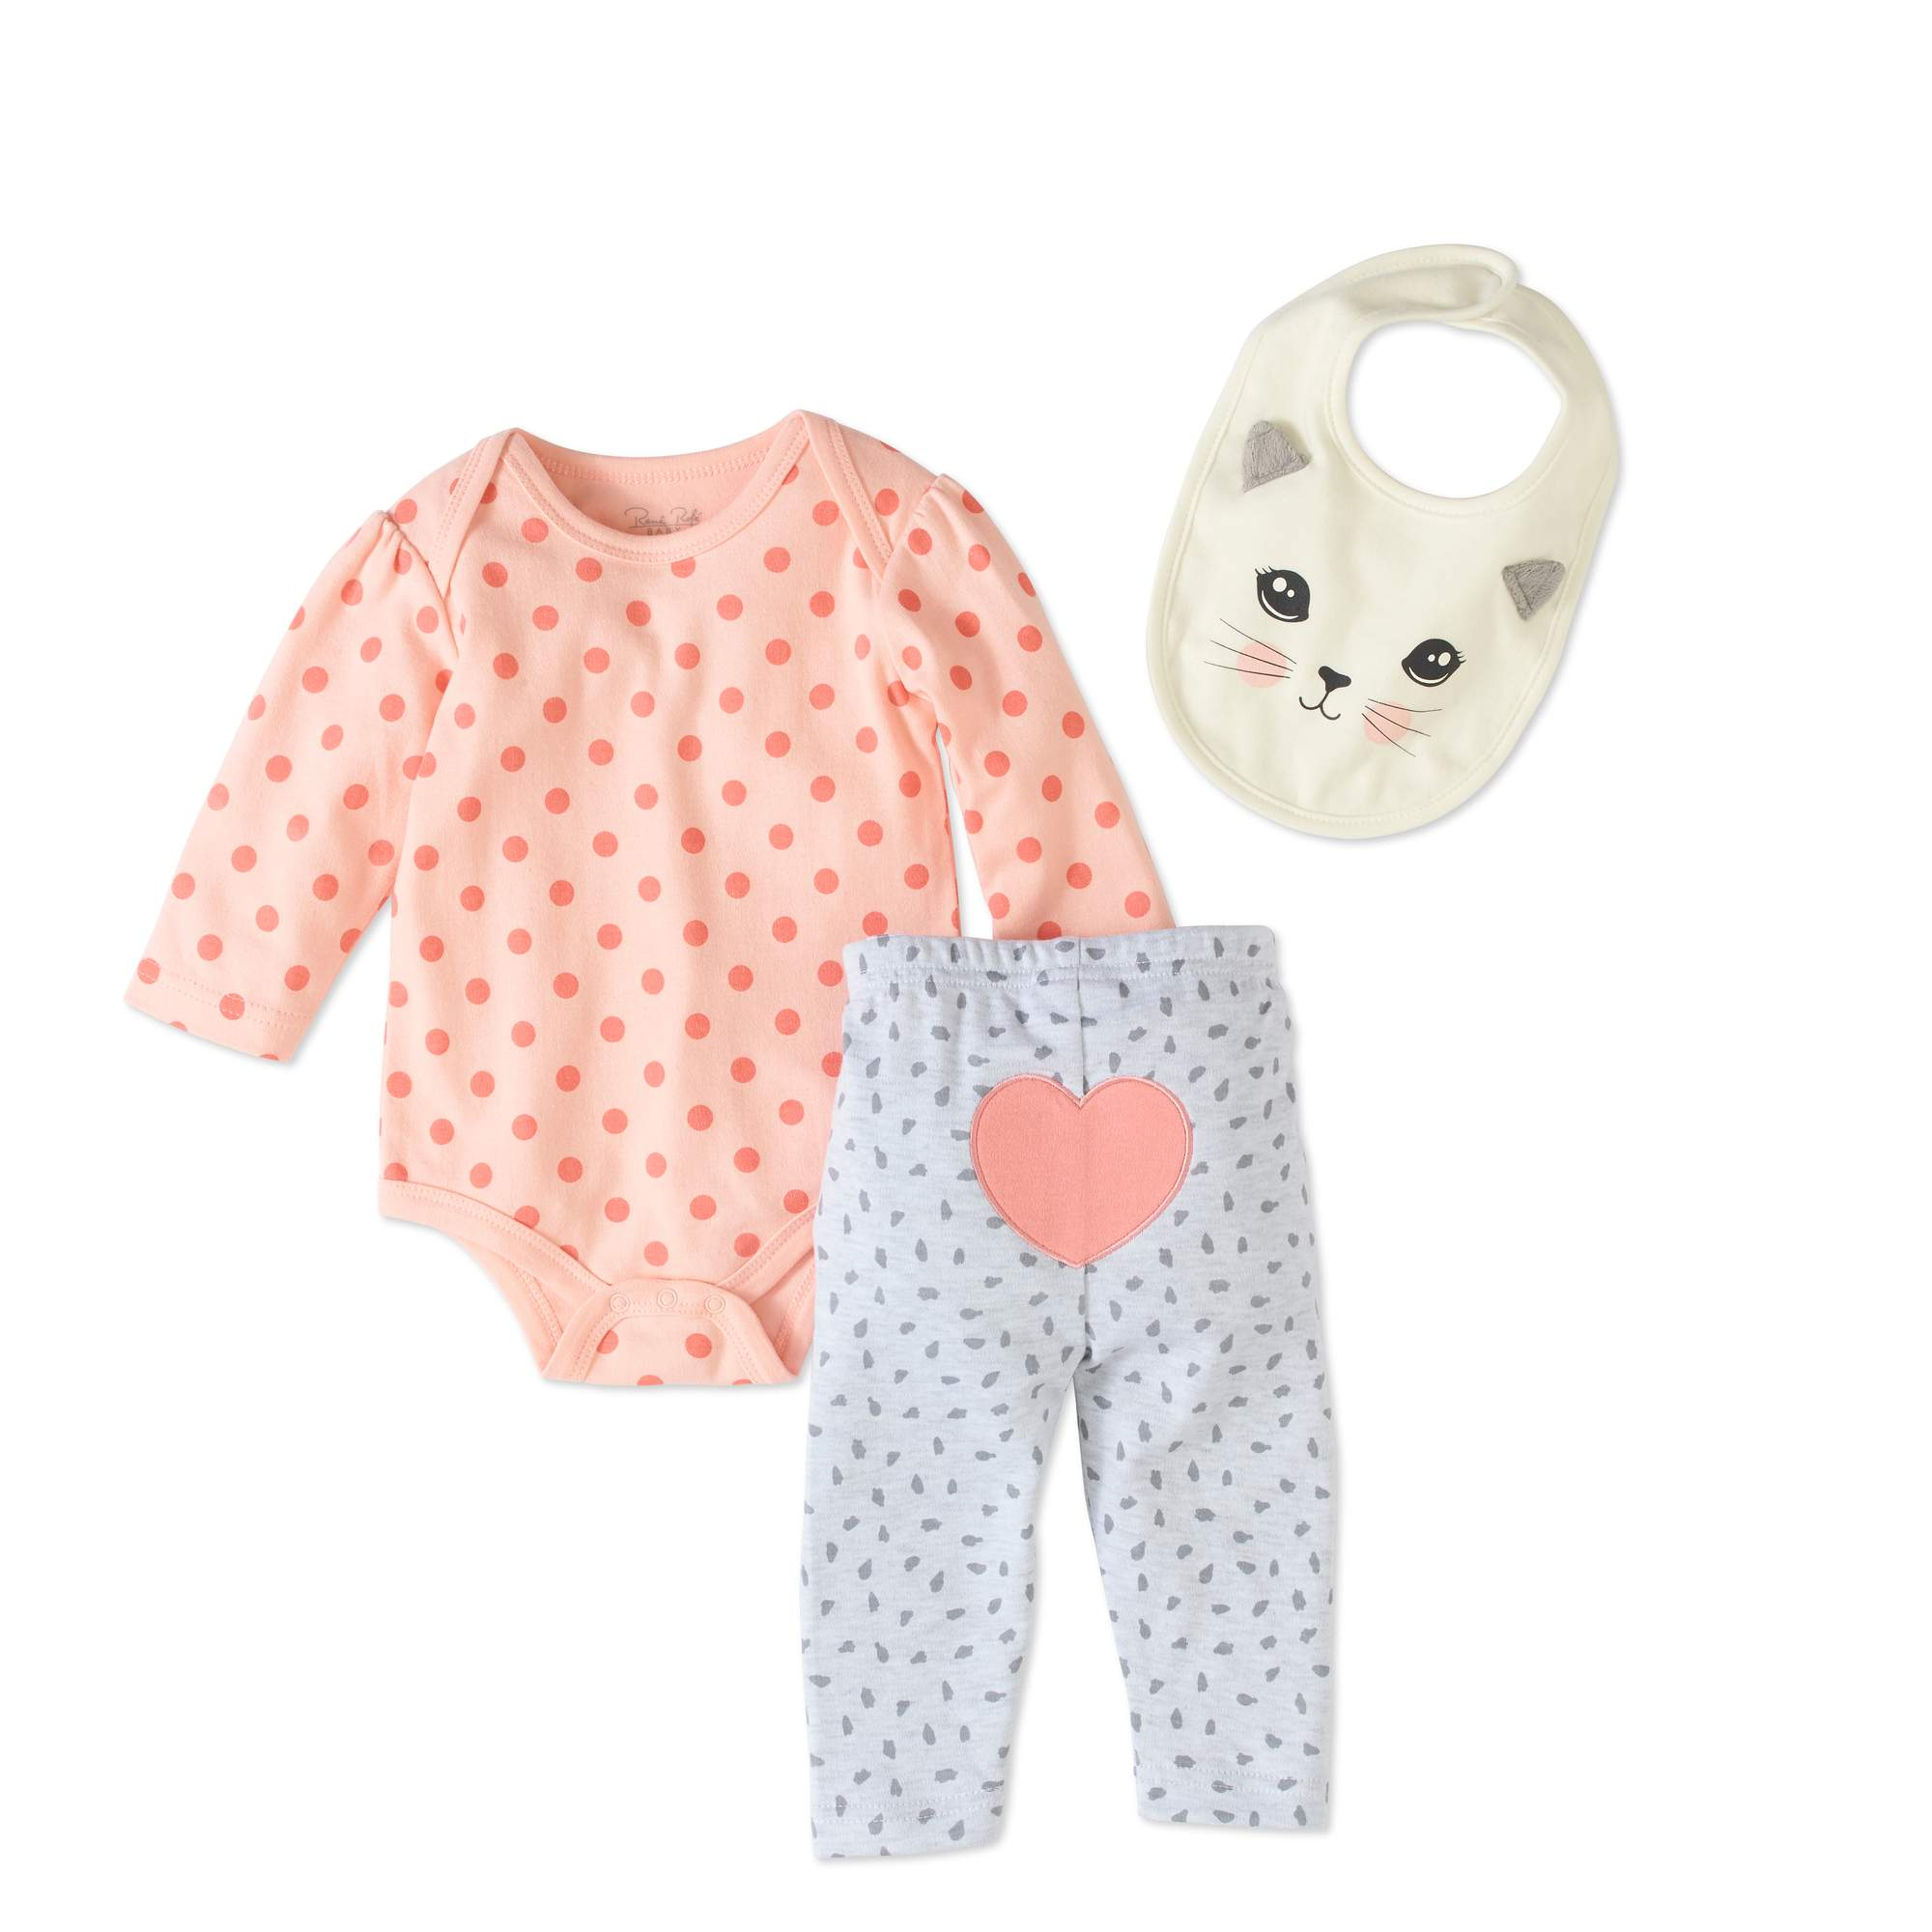 Rene Rofe Newborn Baby Girl Bodysuit, Bib & Turn-Me-Round Leggings, 3pc Set